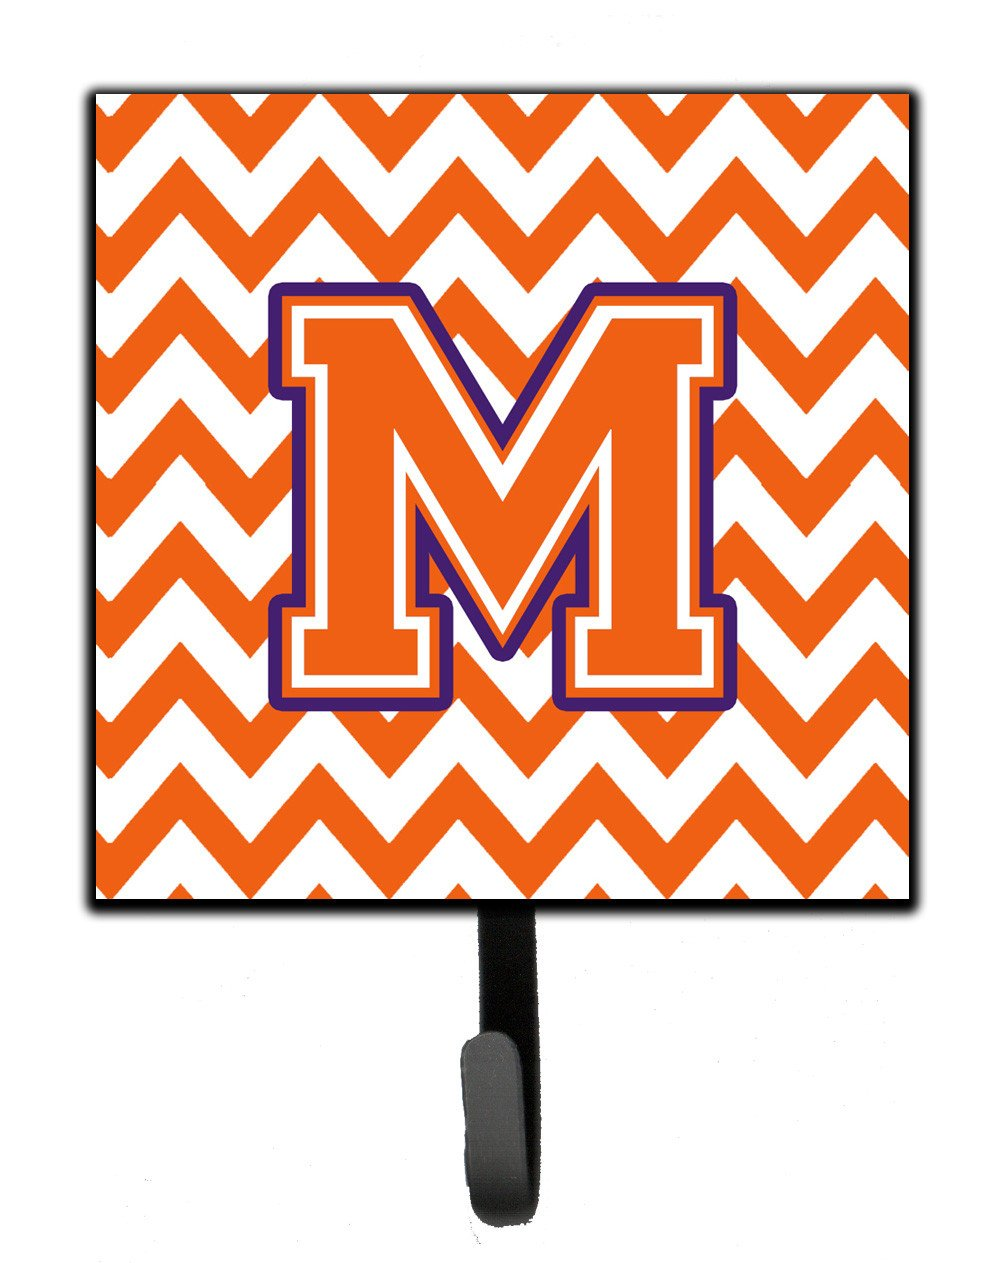 Letter M Chevron Orange and Regalia Leash or Key Holder CJ1062-MSH4 by Caroline's Treasures